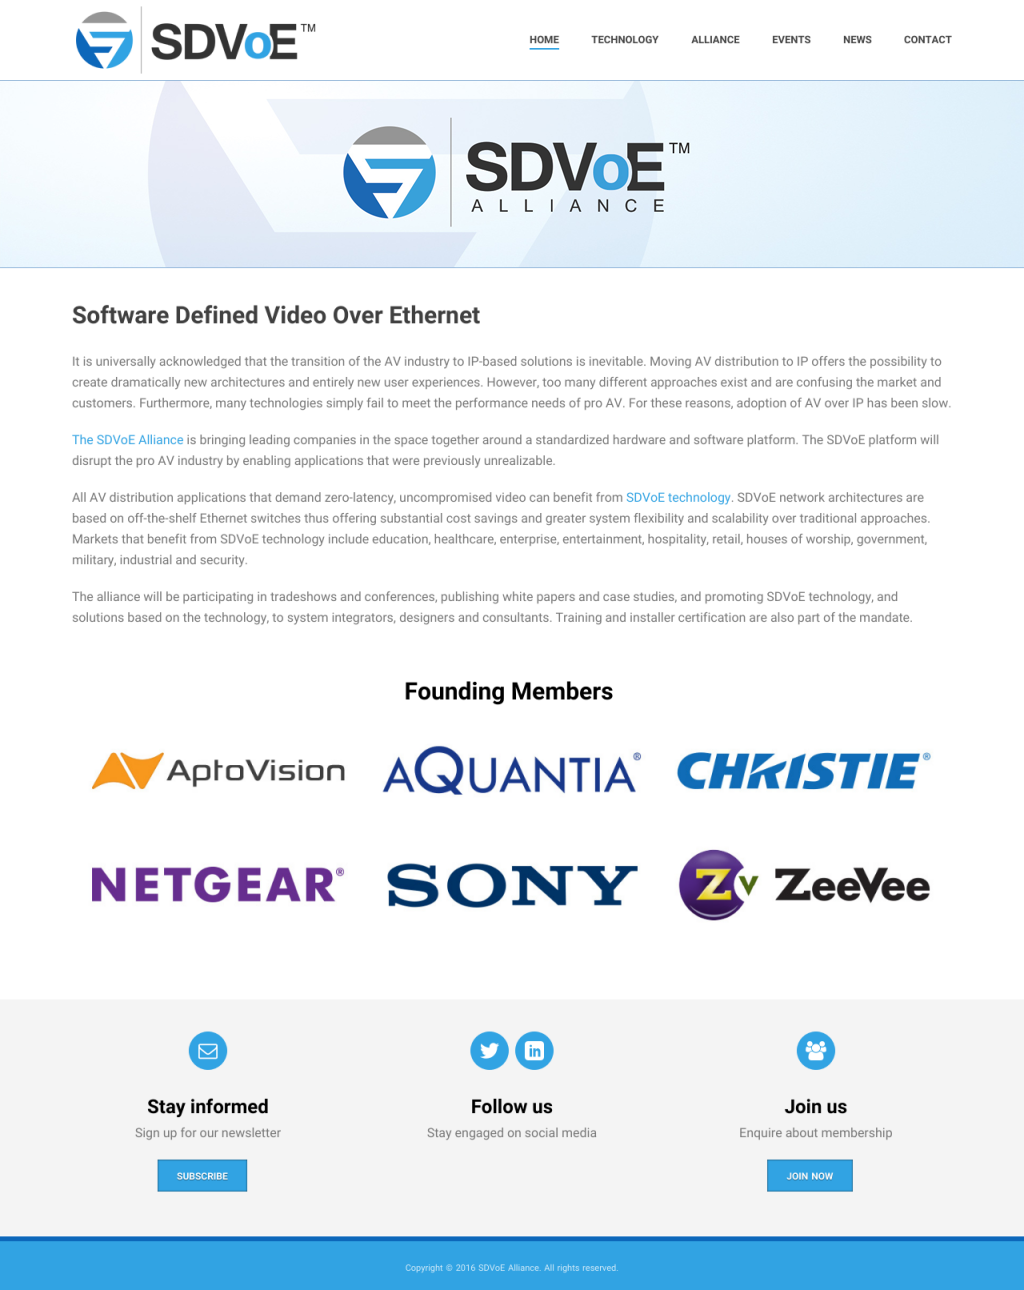 SDVoE Website